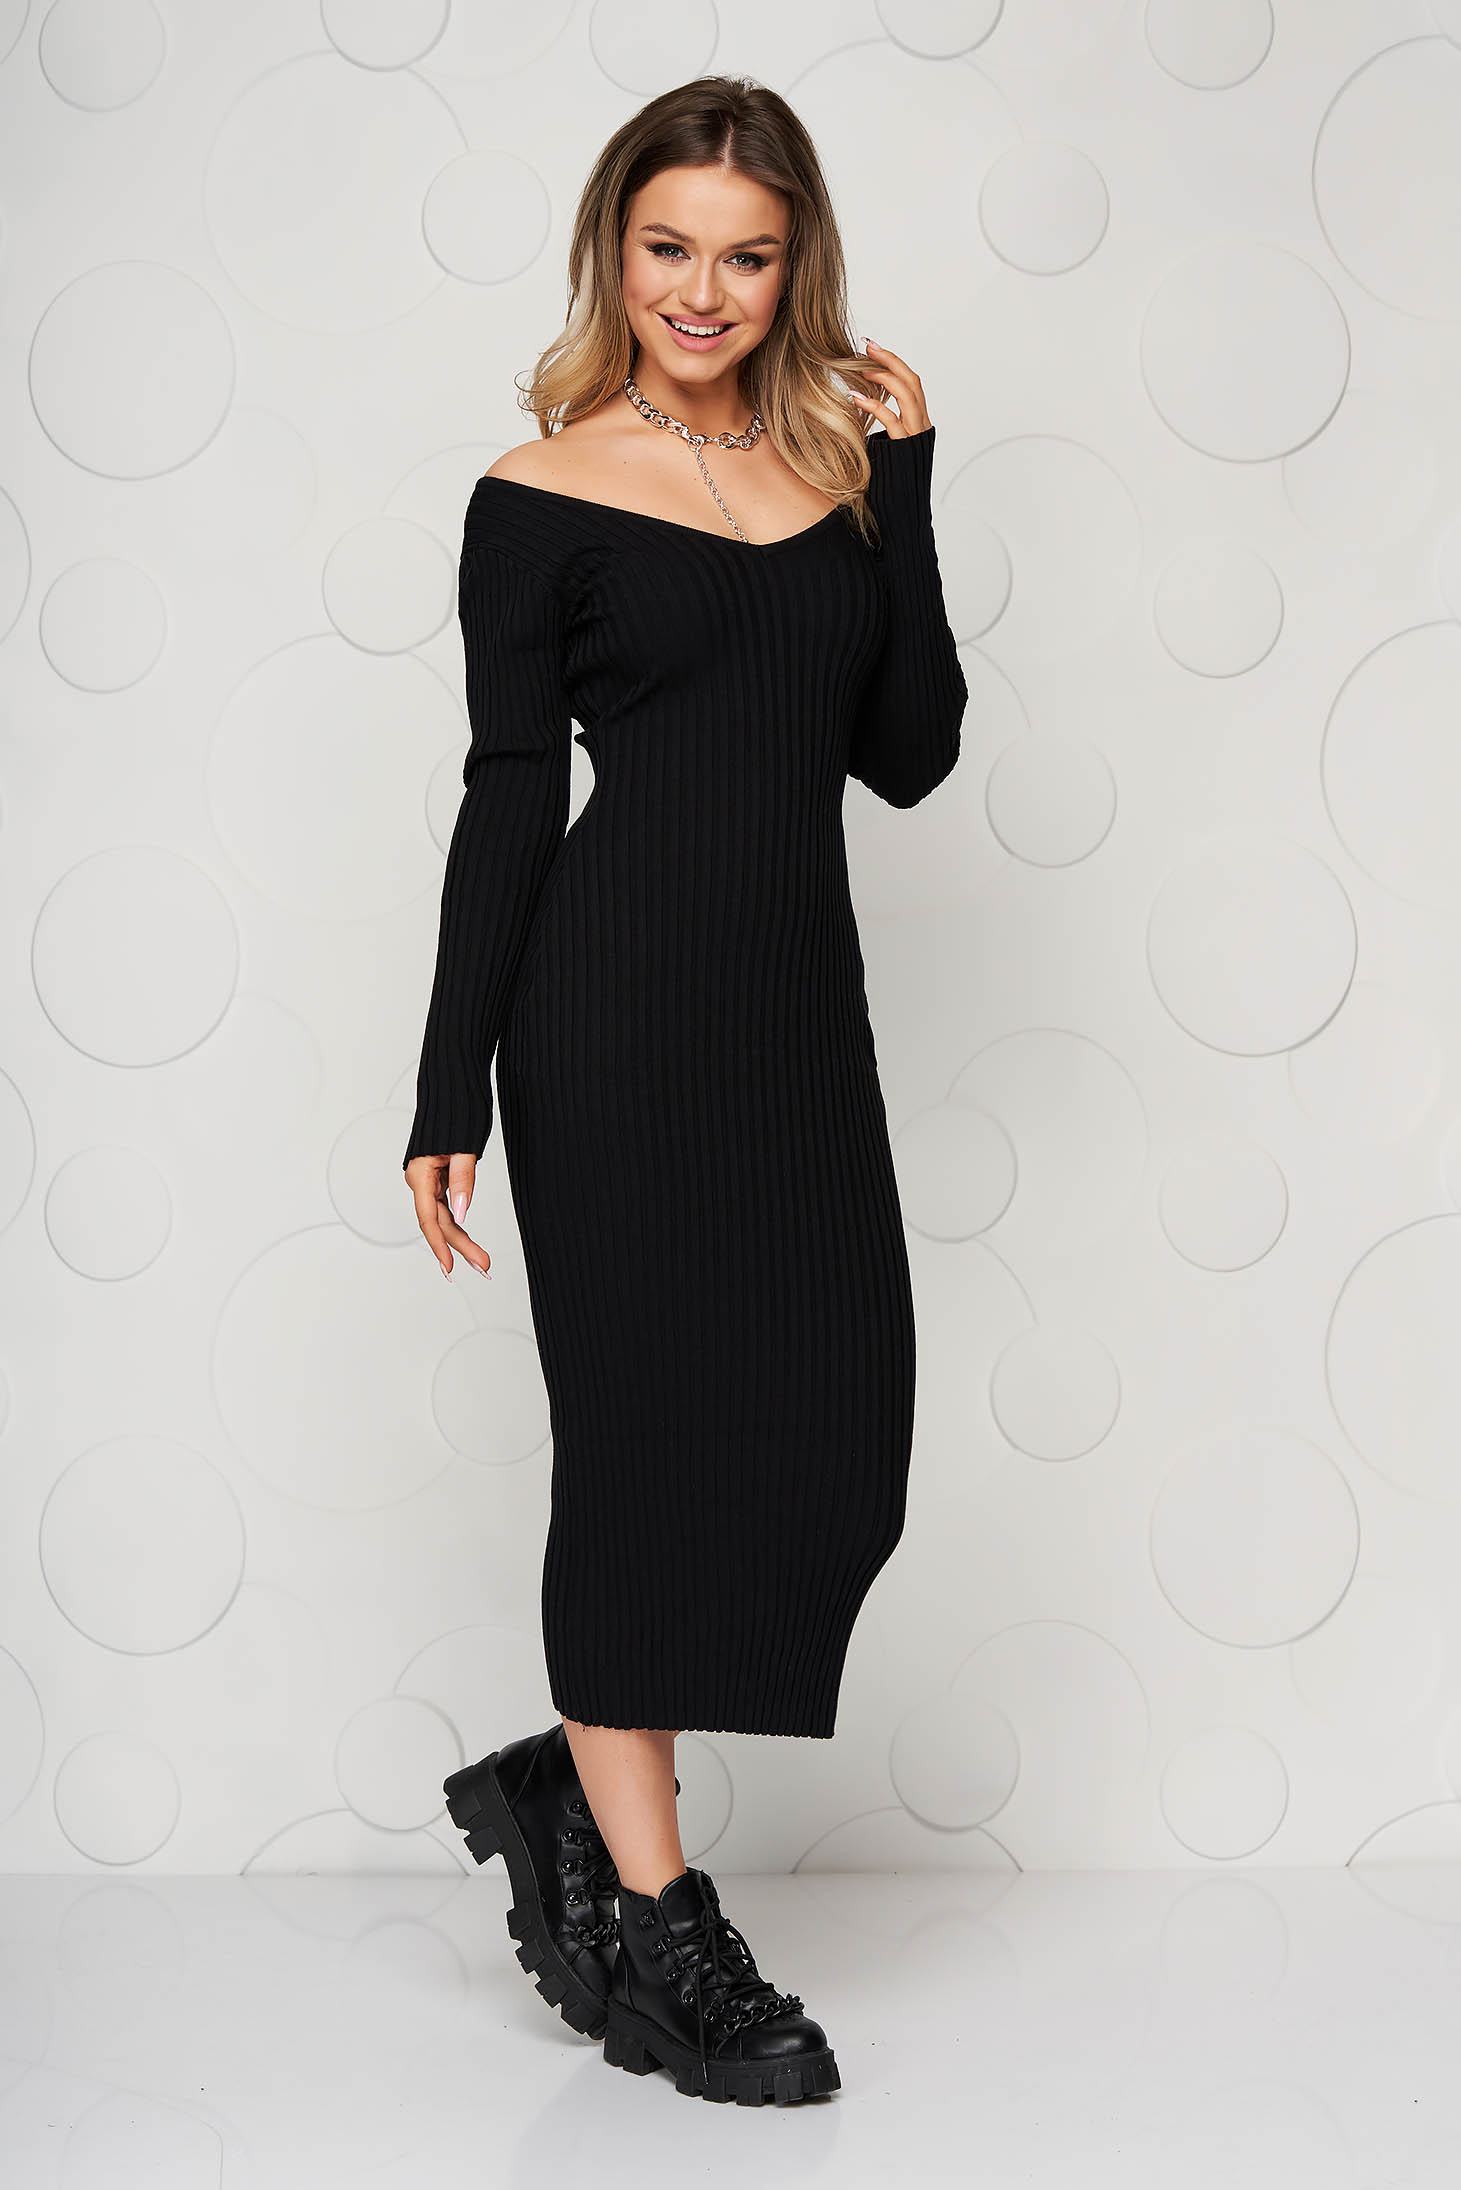 Black casual pencil knitted dress from elastic and fine fabric with deep cleavage